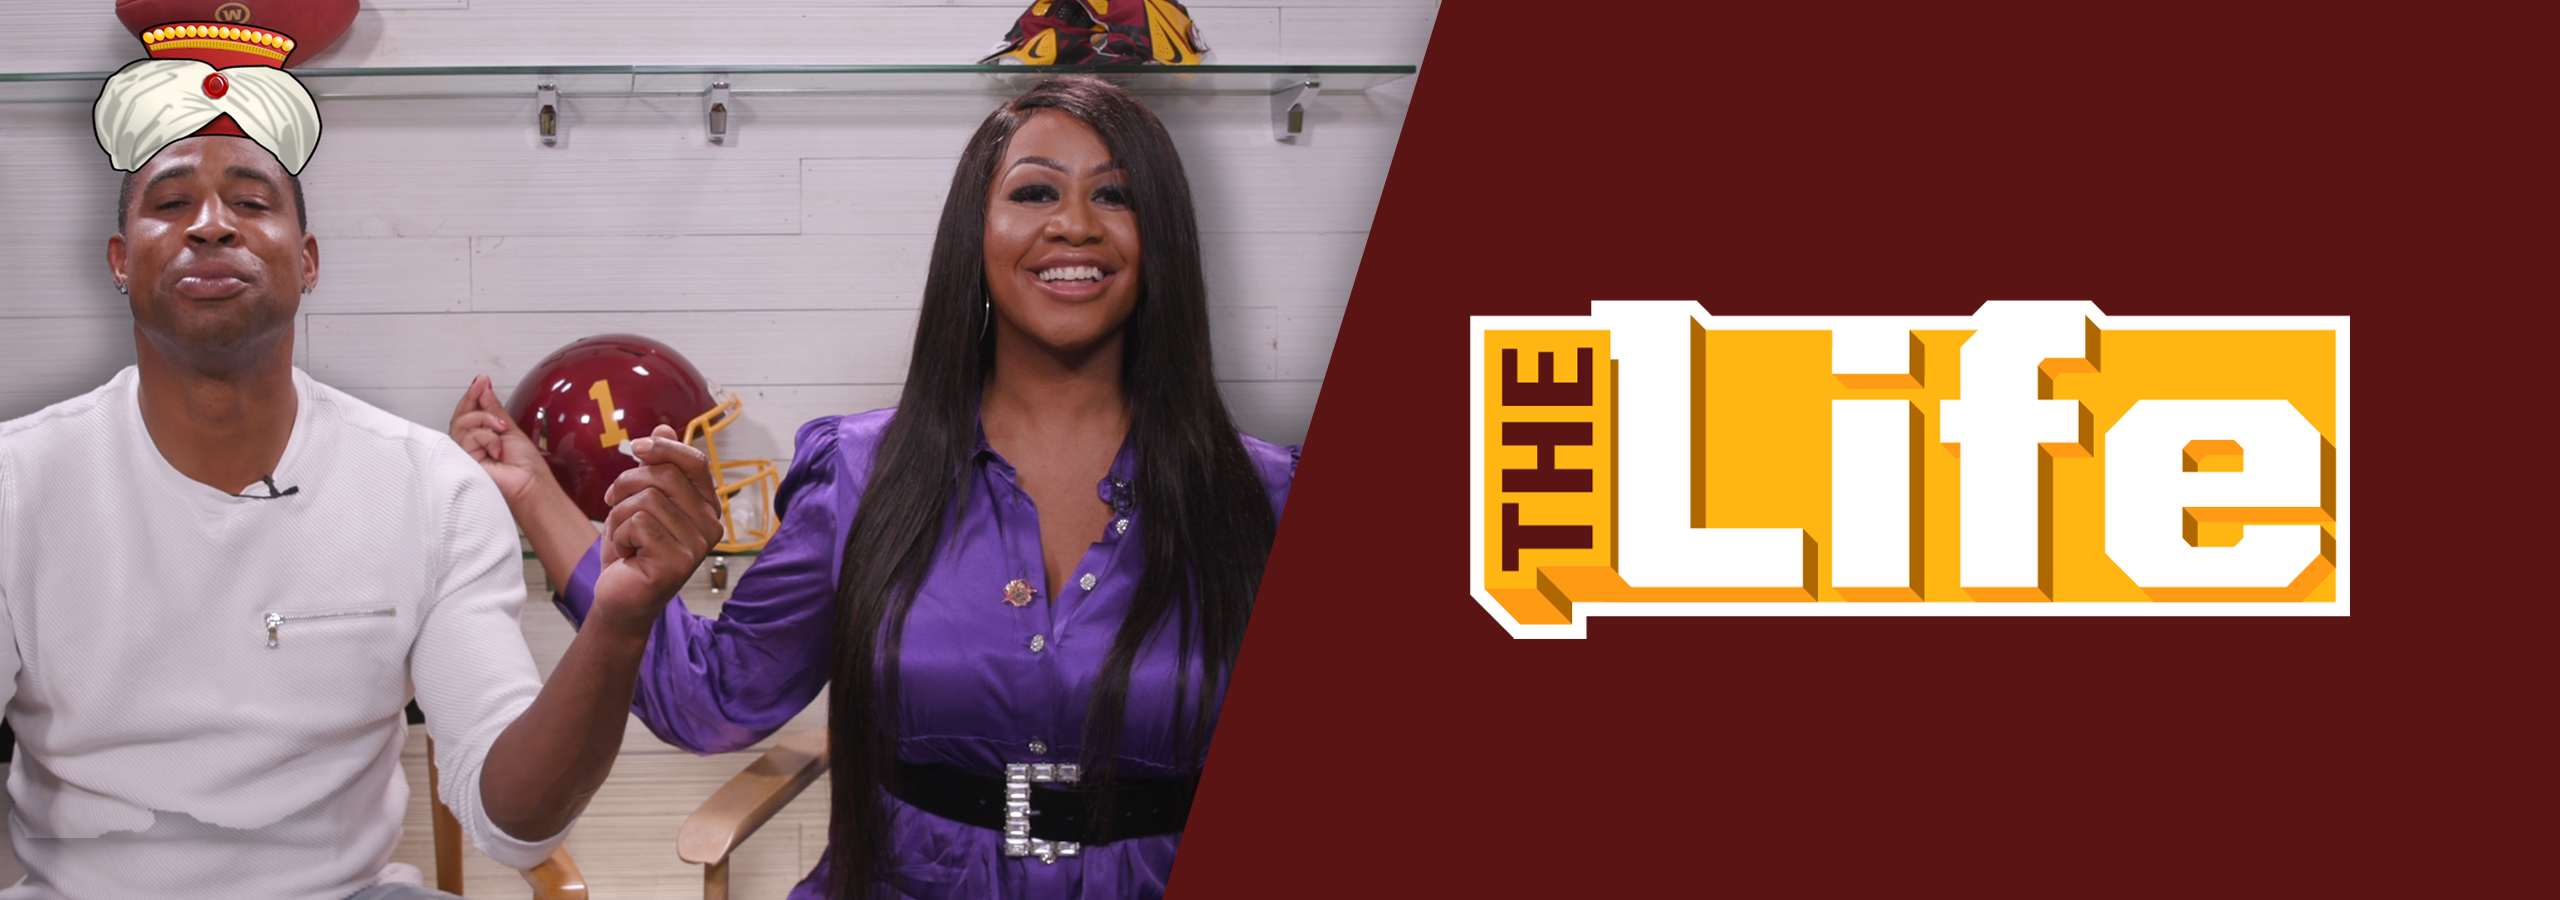 "Our pop-culture-meets-sports show. ""The Life"" is a weekly segment that will showcase the lighter side of the game through the lens of lifestyle & pop culture. The Life drops on Thursdays."